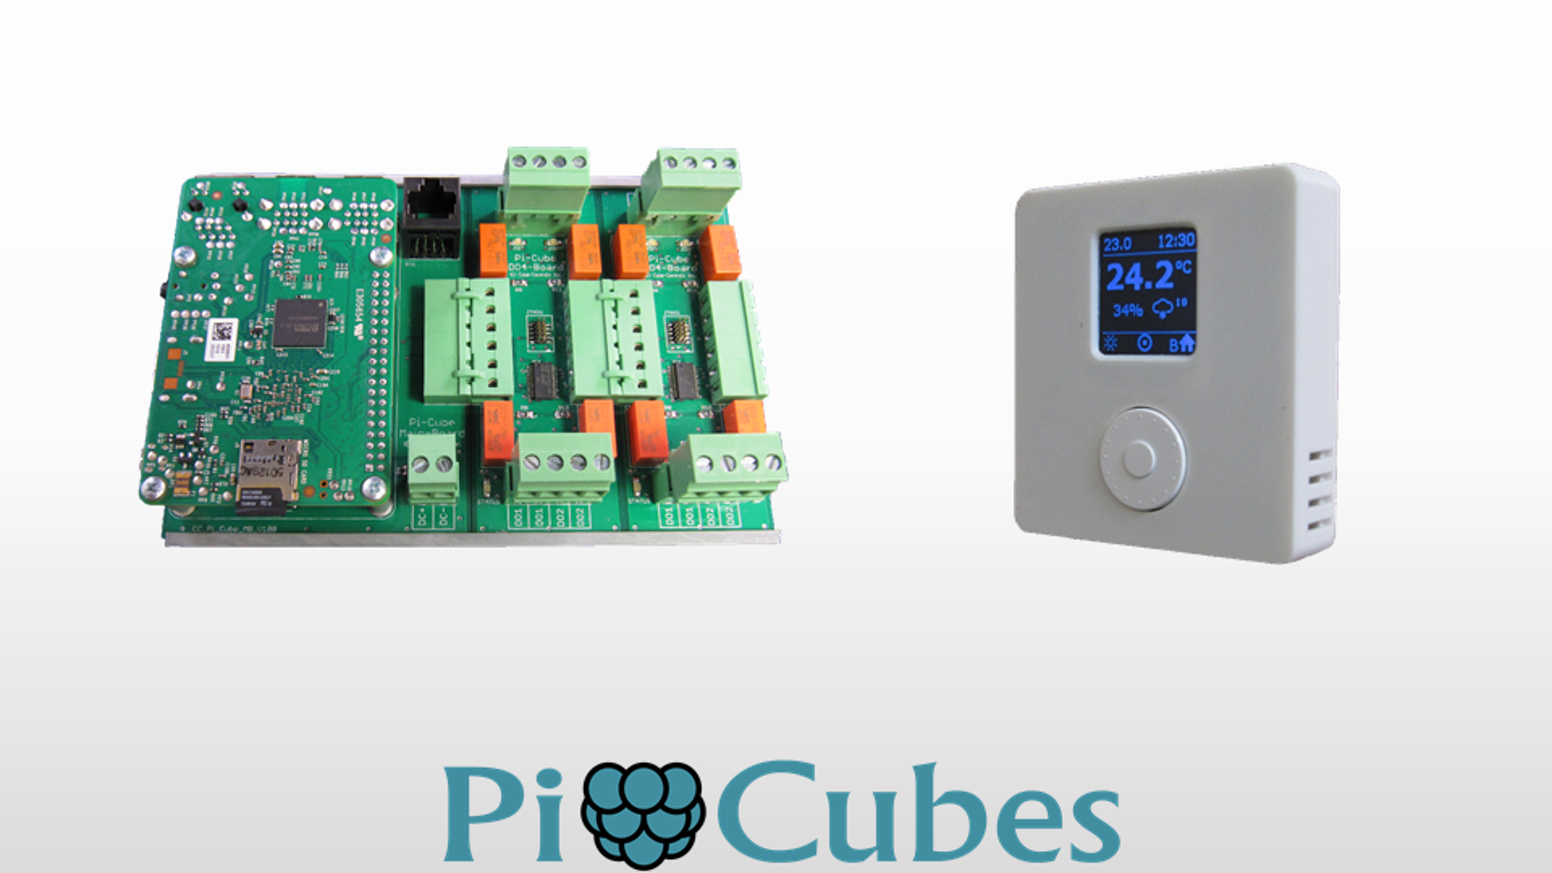 Pi Cubes is Modular DIY/Hobby HVAC Automation system based on the Raspberry Pi. Supports up to 24 I/Os and 4 Thermostats.